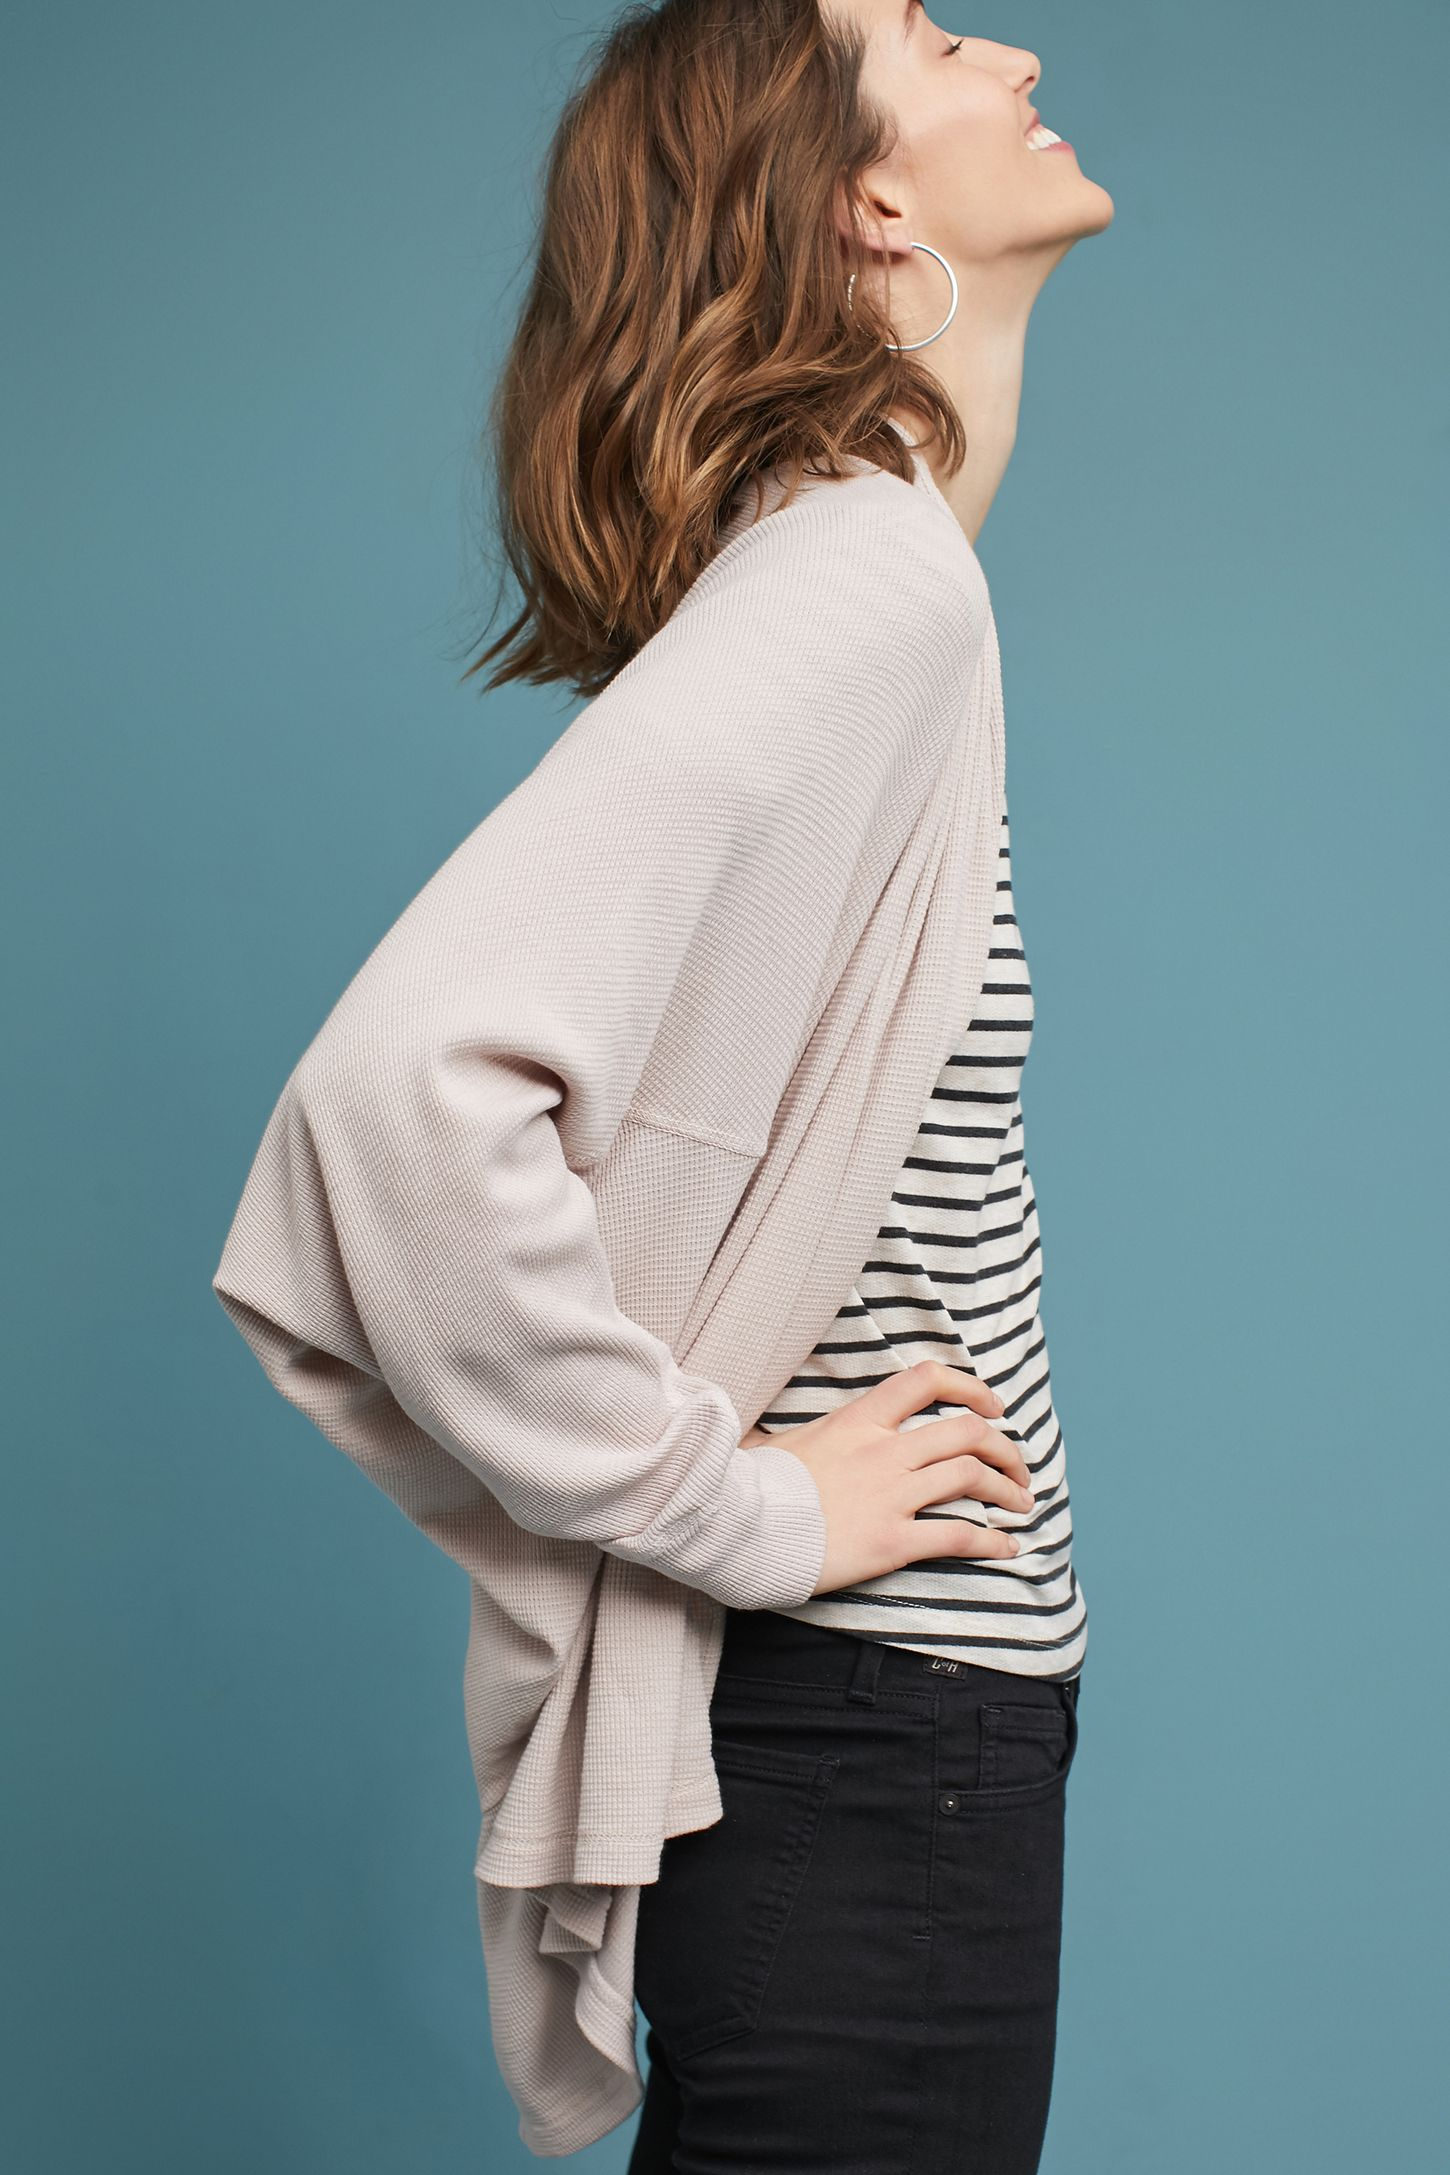 Pink - Cardigan Sweaters & Duster Cardigans | Anthropologie